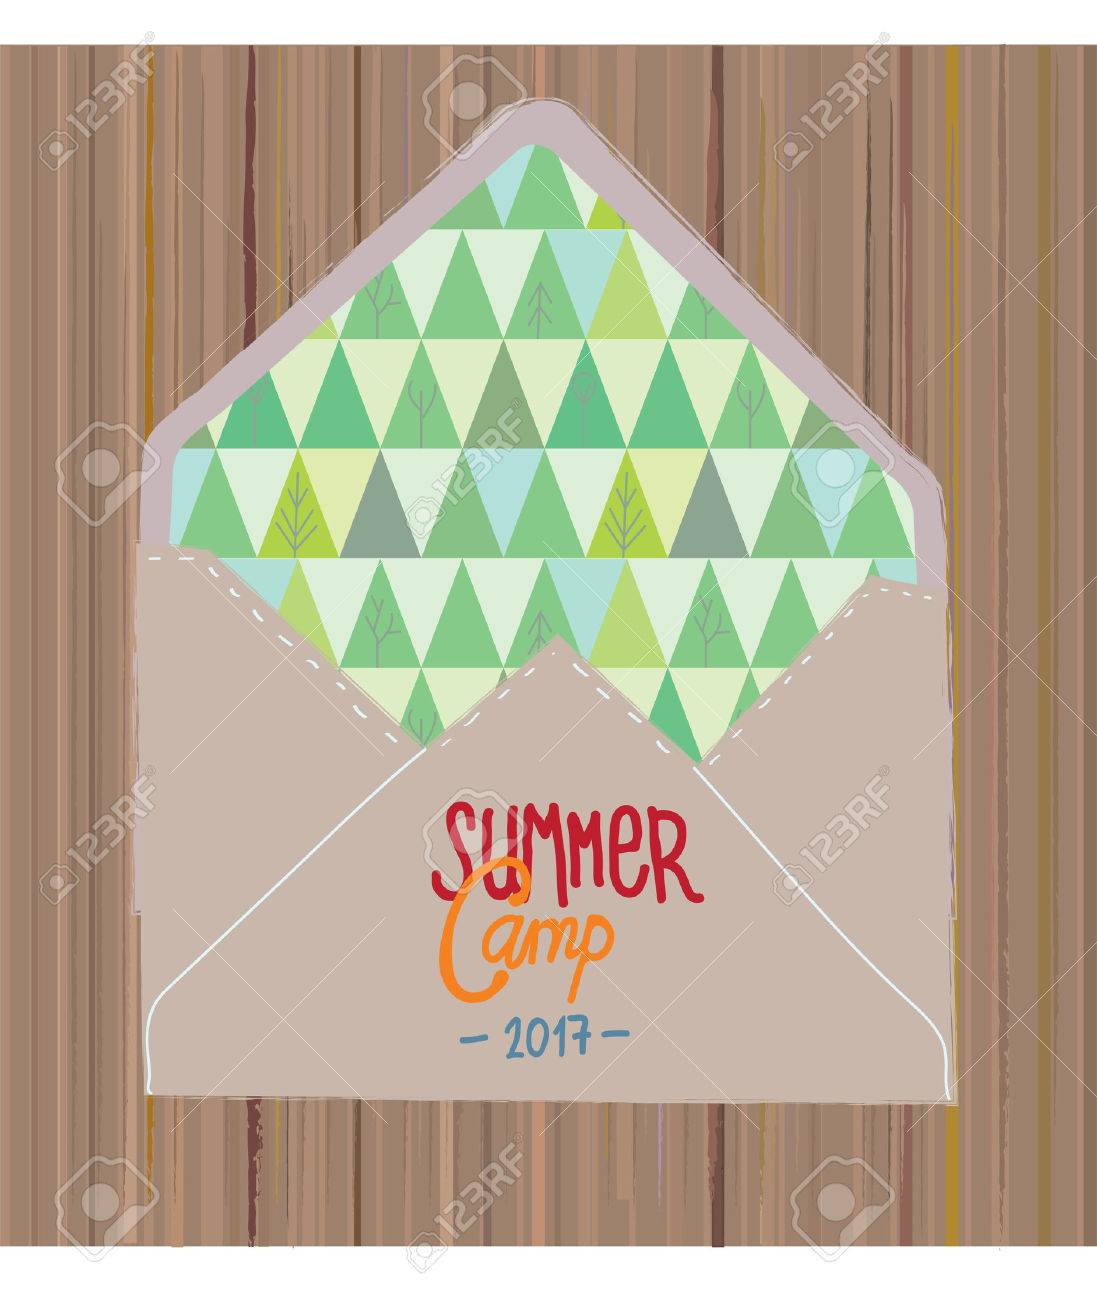 Summer camp invitation with woods and envelope vector graphic summer camp invitation with woods and envelope vector graphic illustration stock vector 71027723 stopboris Choice Image